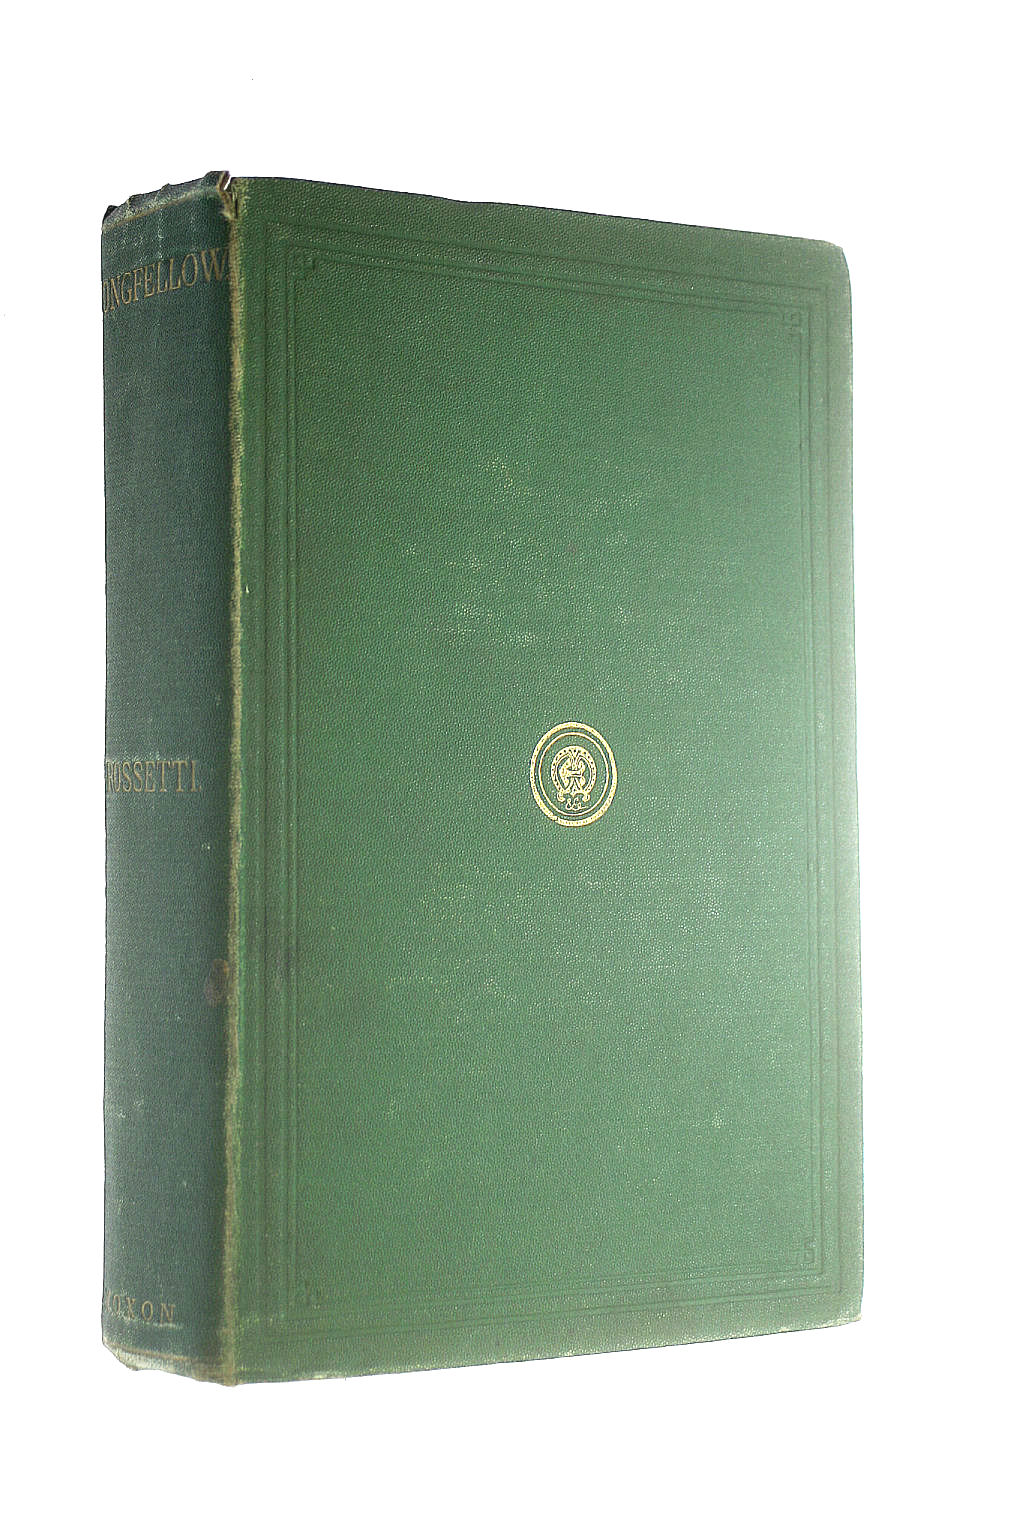 Image for The Poetical Works of Henry W Longfellow edited, with a critical memoir by Rossetti